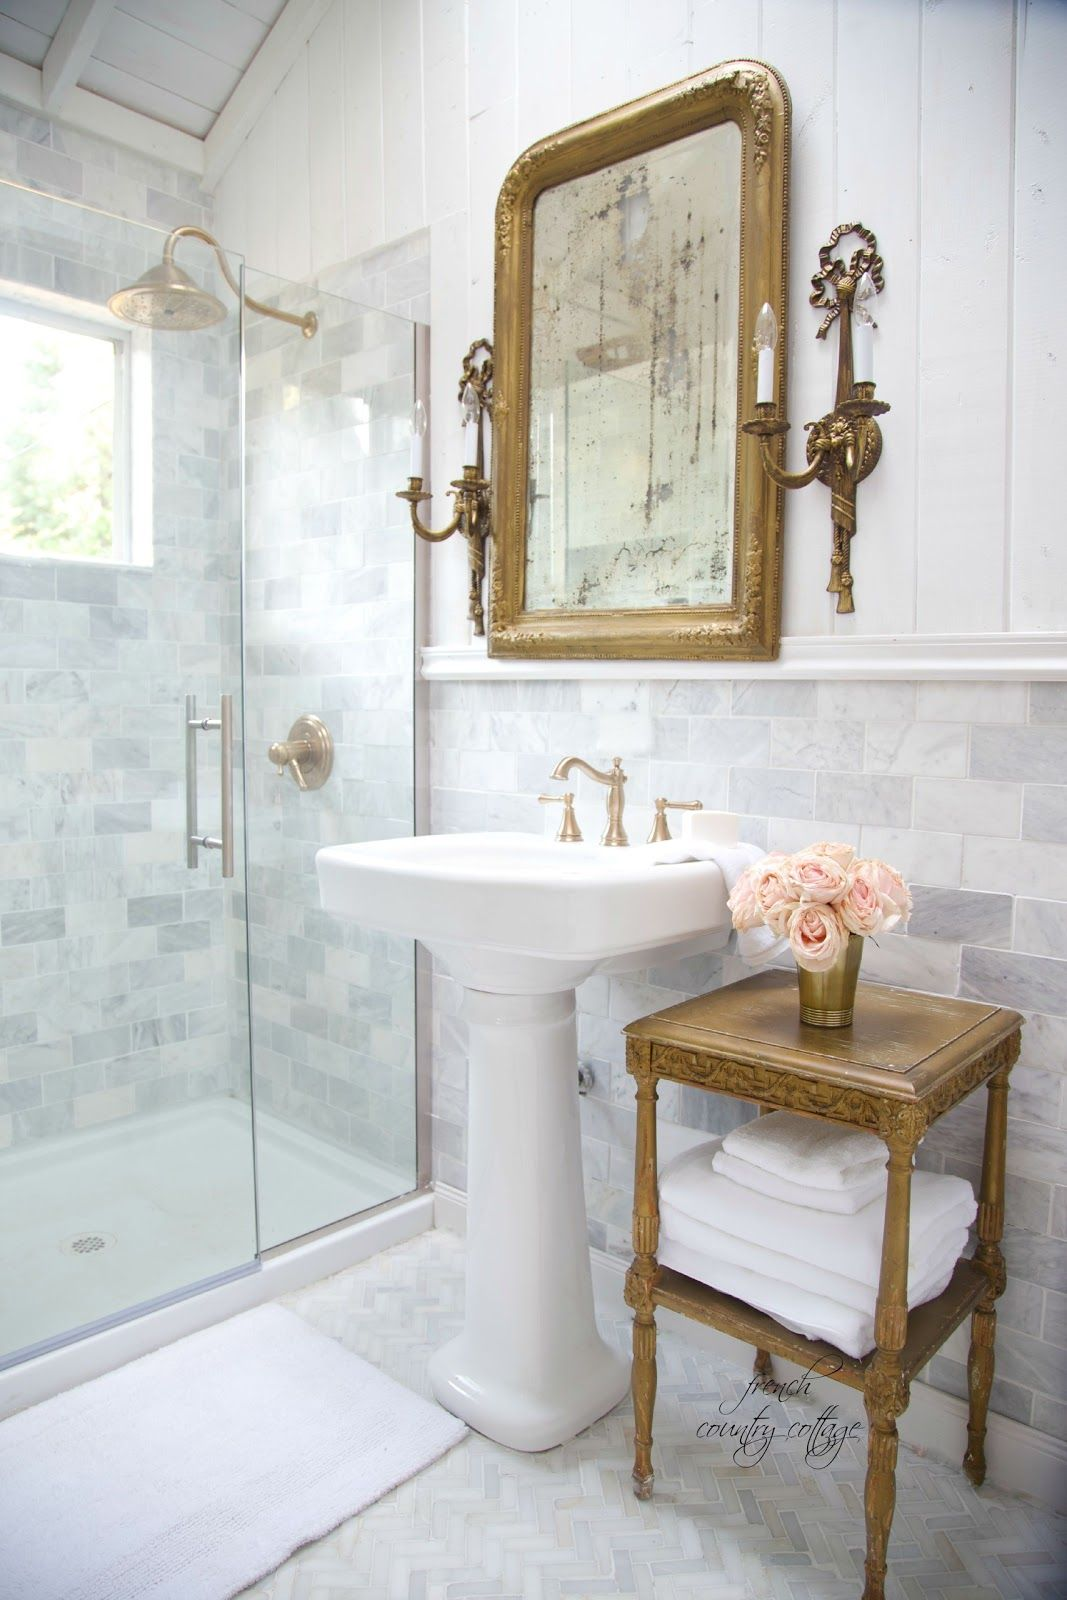 French Cottage Bathroom Renovation Reveal  French Country Glamorous French Country Bathroom Designs Inspiration